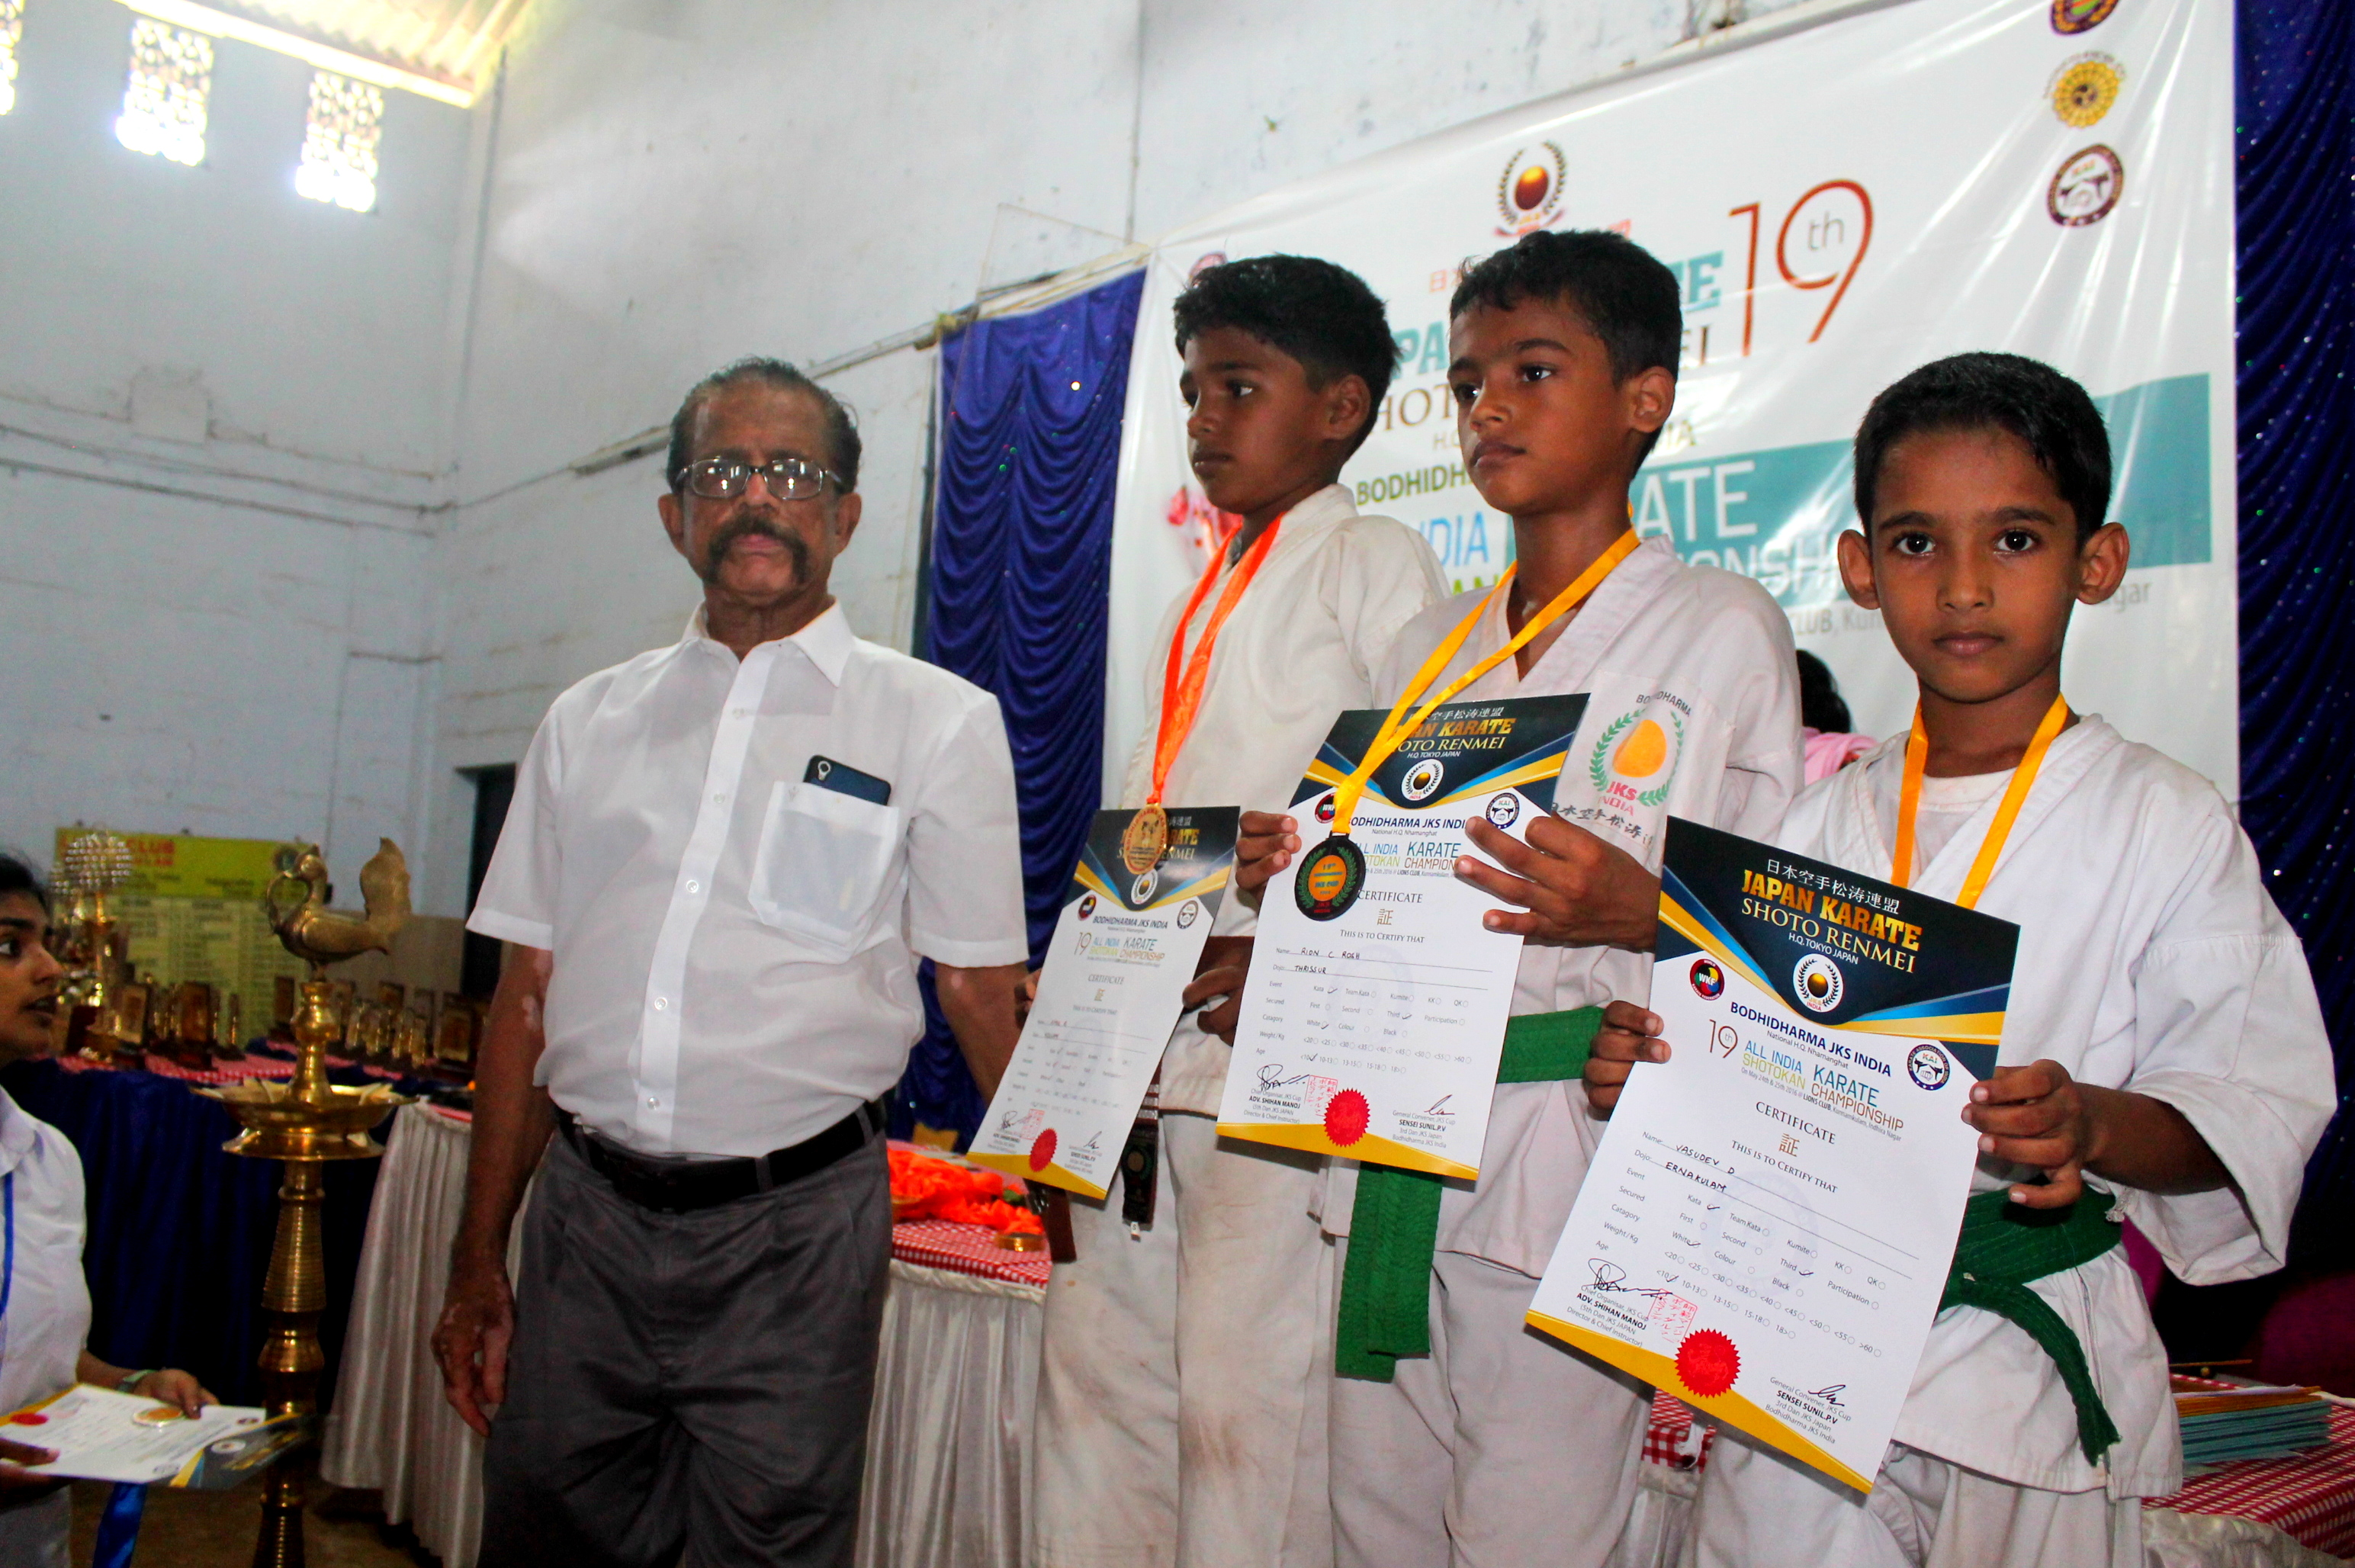 10 years Boys Kata 2nd runner up - Vasudev